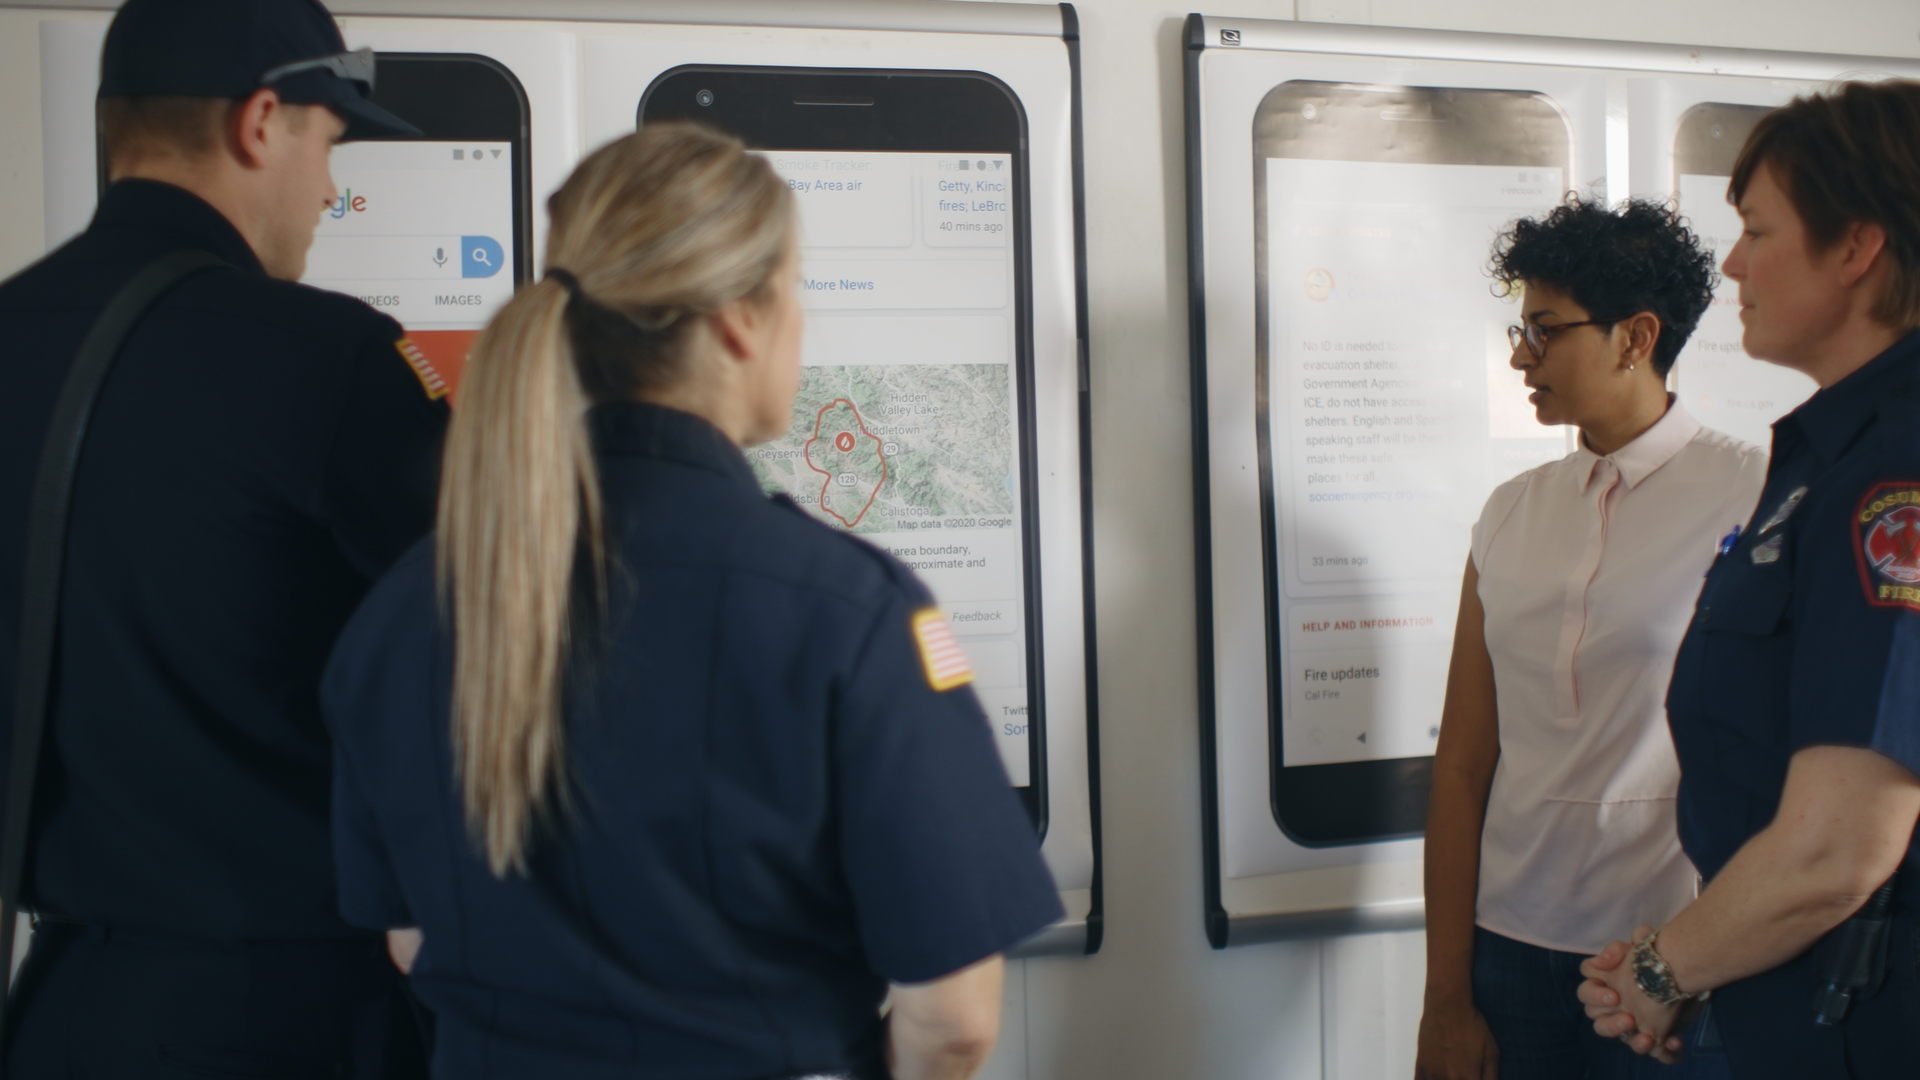 Google working with local firefighters on wildfire boundary maps.